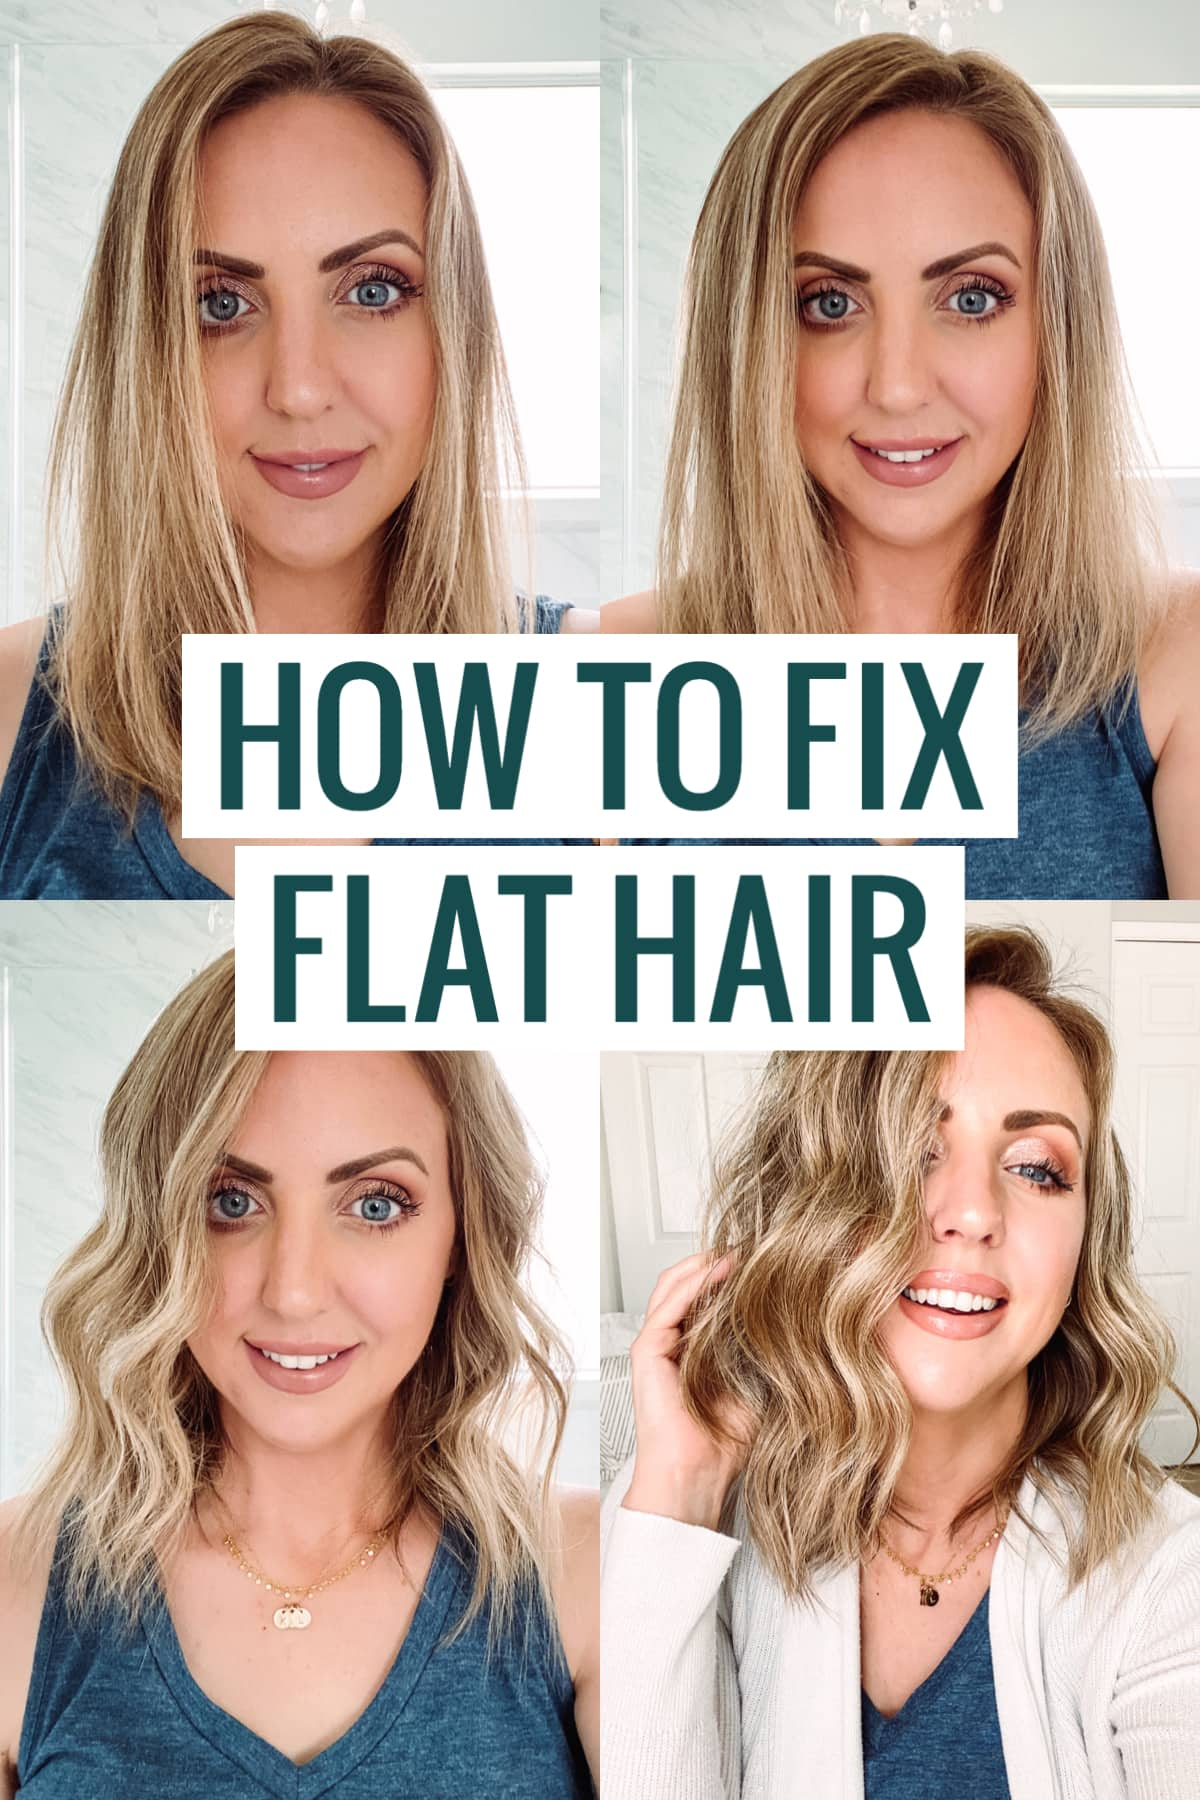 Houston beauty blogger Meg O. shares the best way to fix flat hair using the Bed Head Little Tease crimper